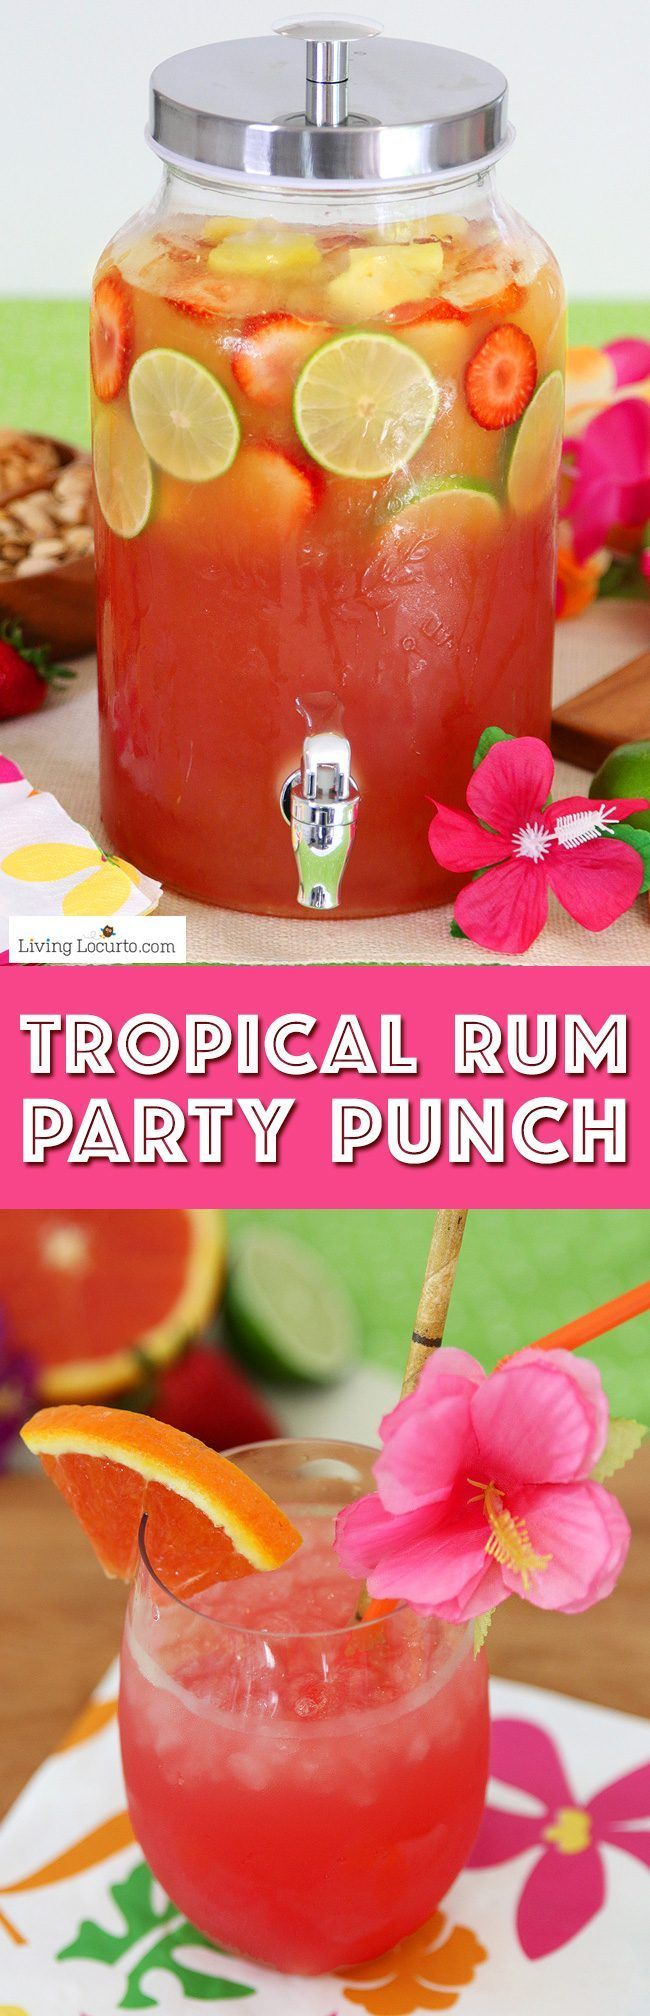 Summer Luau Party Ideas! Tropical rum punch is a delicious summer cocktail recipe for a luau party or to sip by the pool! A mix of juice and coconut rum for a pretty layered drink. (luau party foods appetizers)